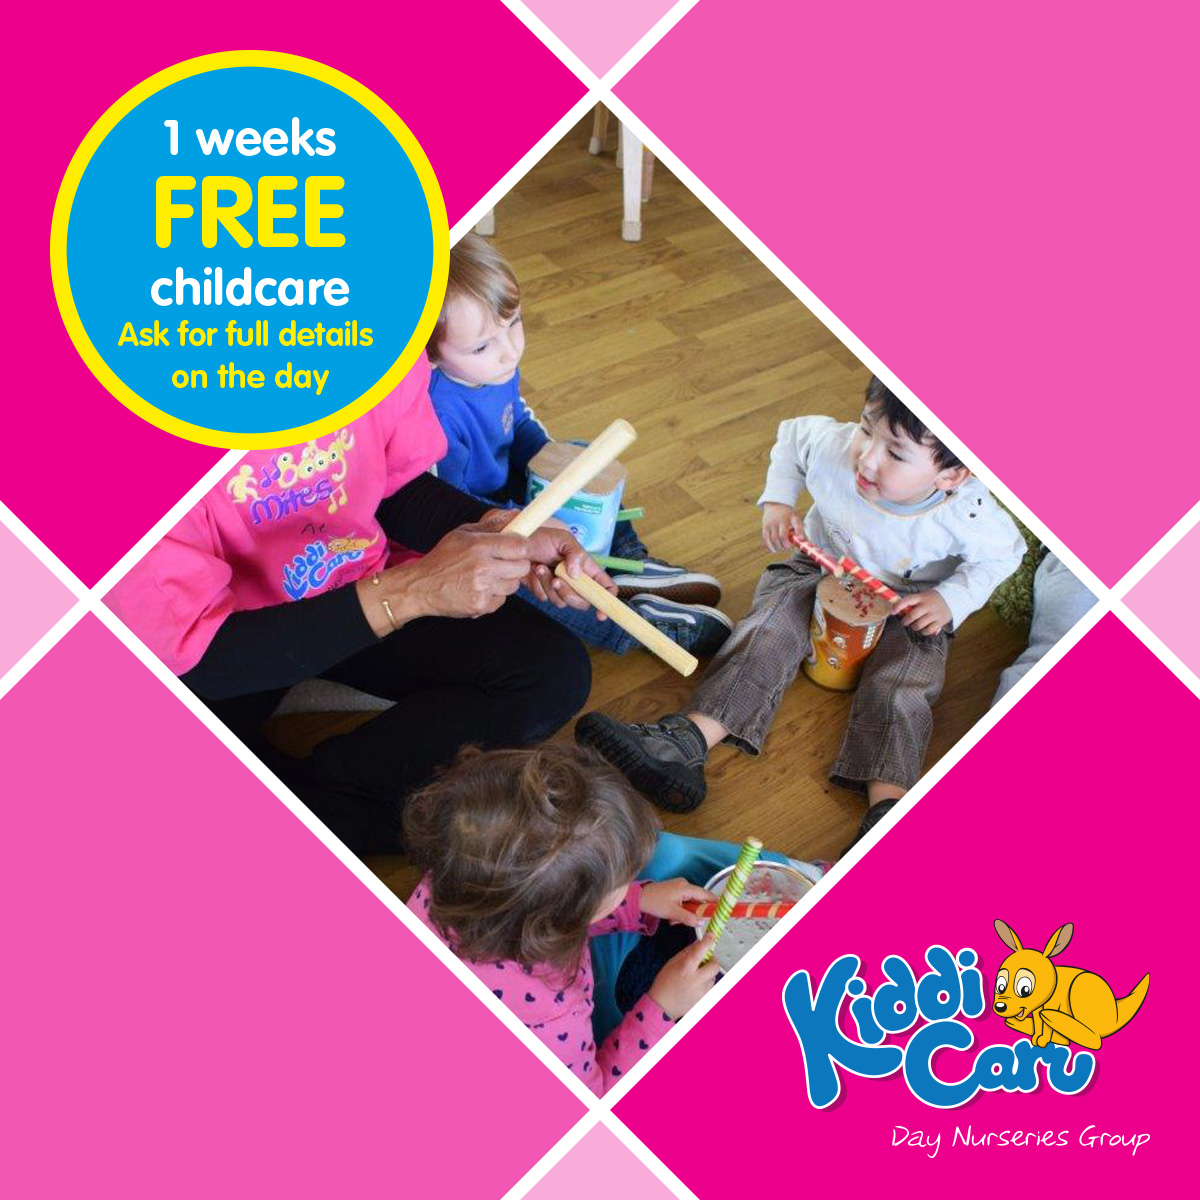 Childcare Open Event at Kiddi Caru Day Nursery and Preschool in Harlow